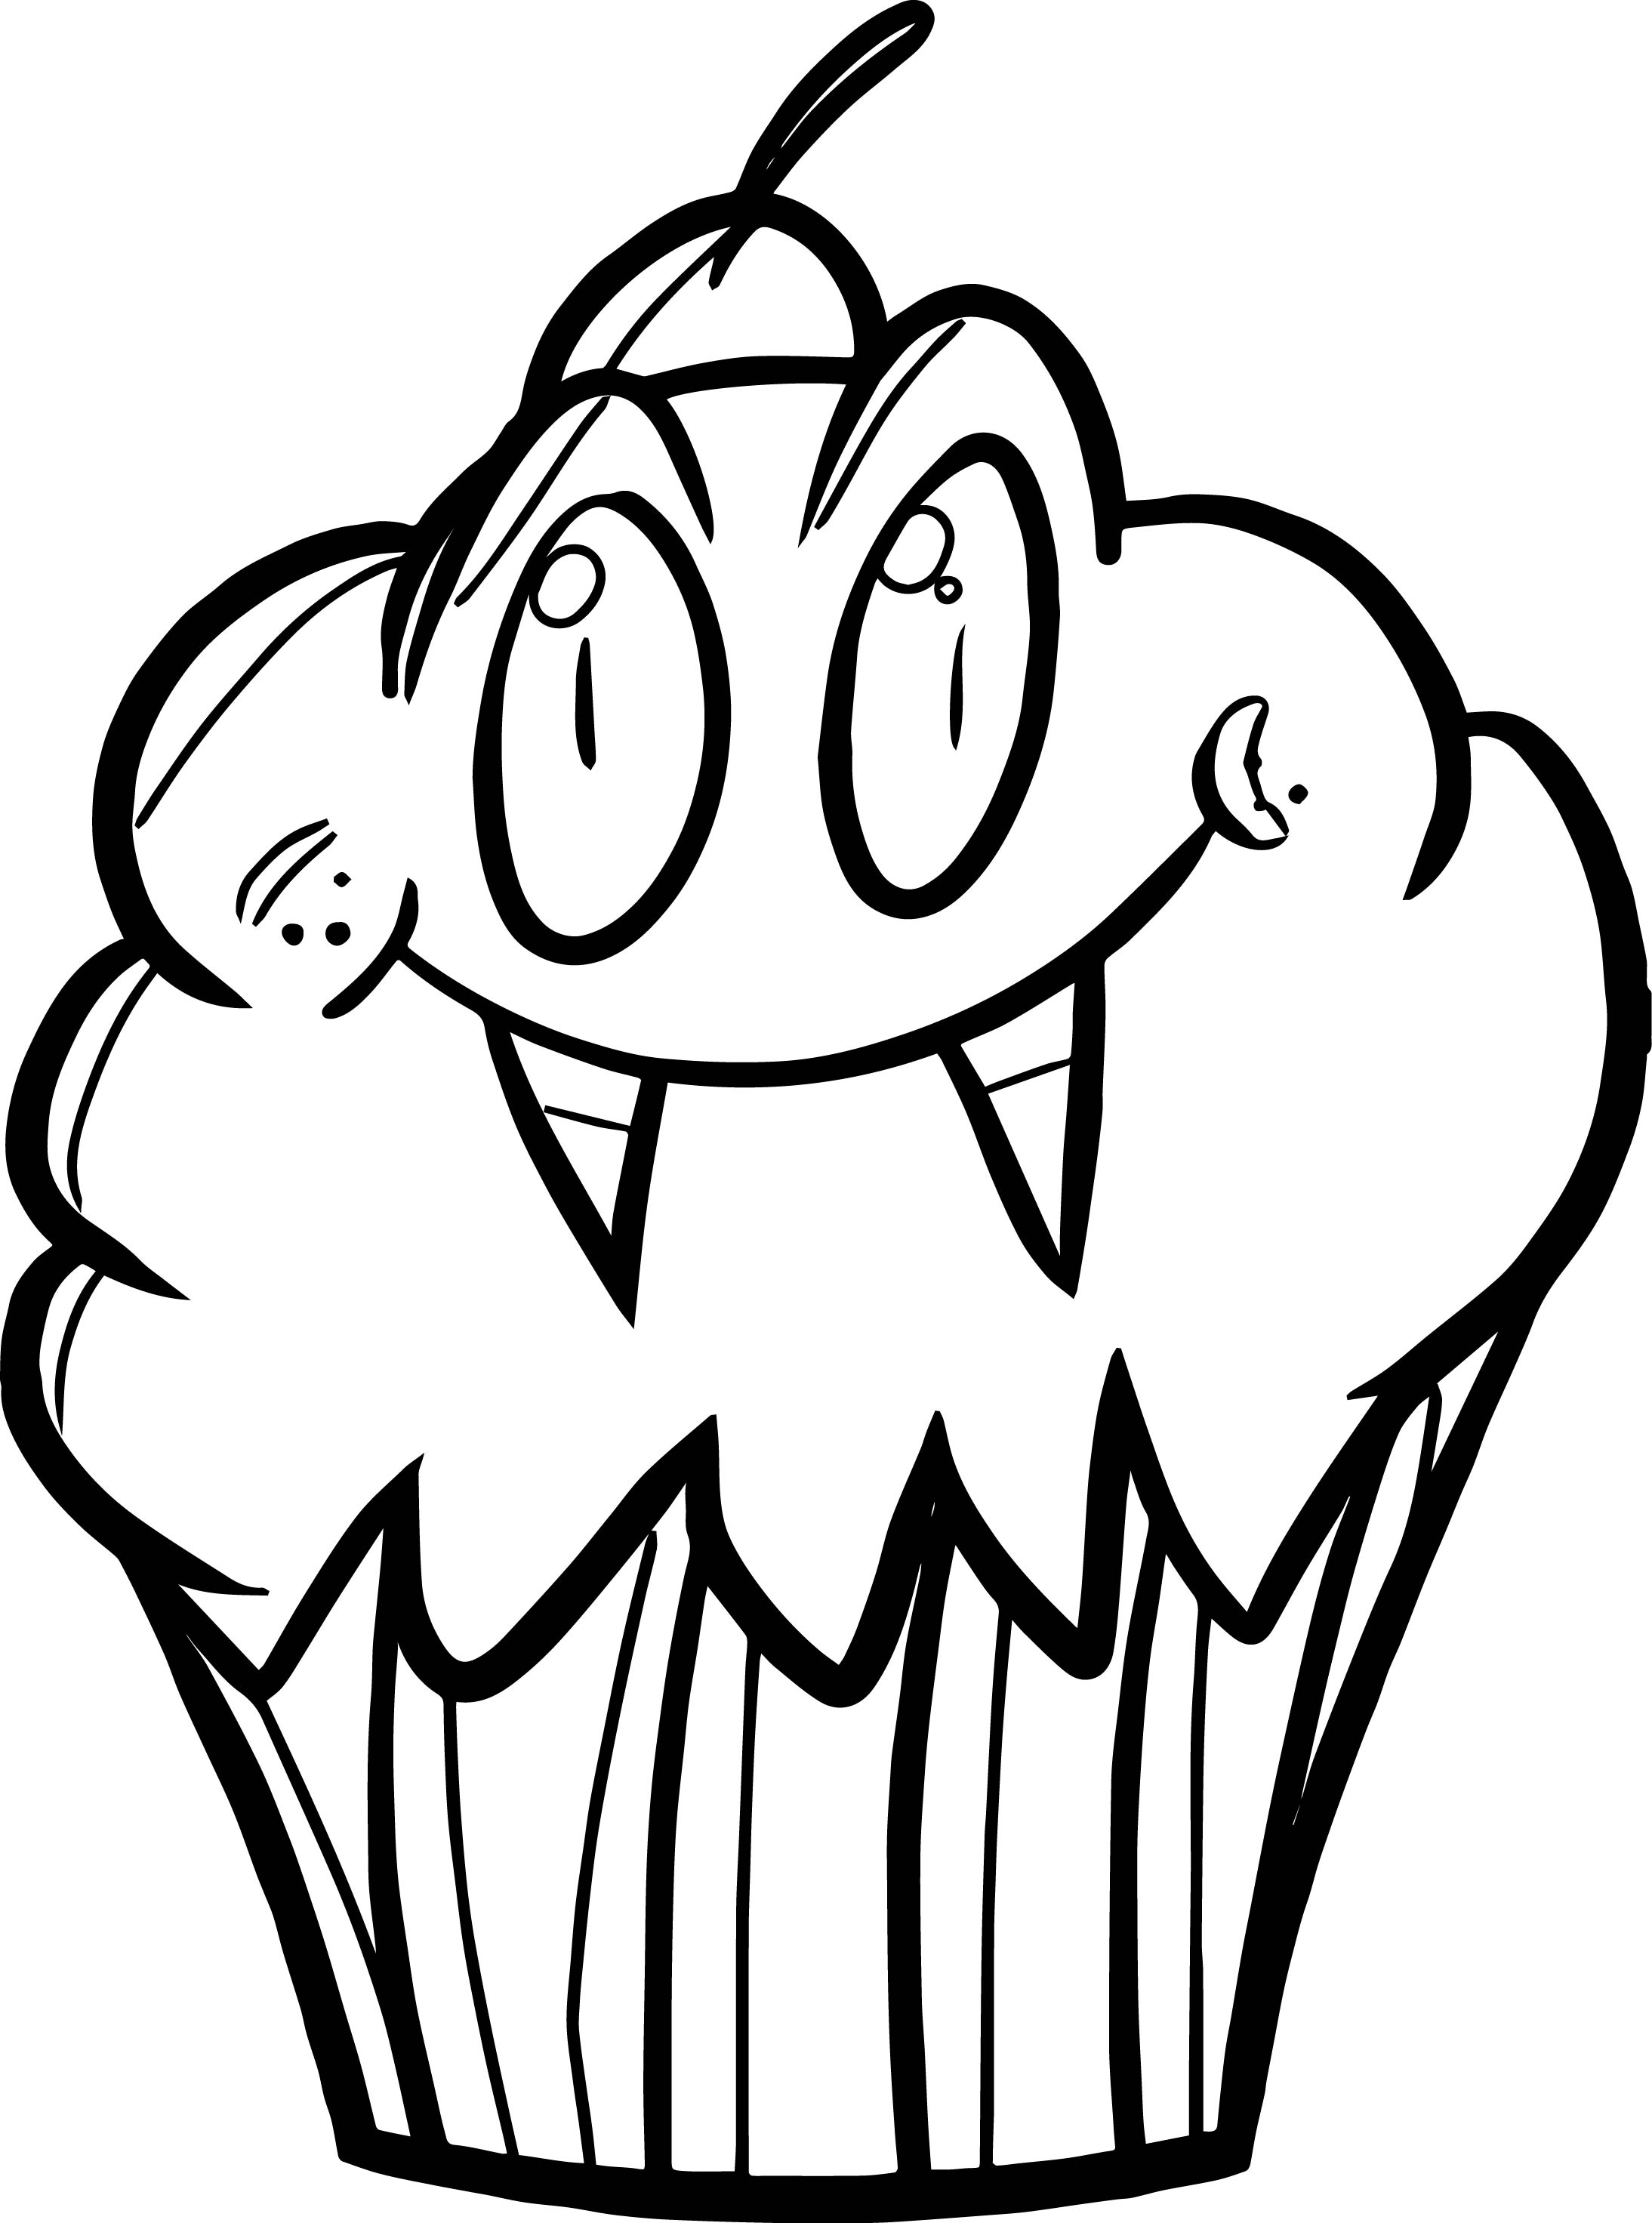 Vampire Cupcake Cartoon Coloring Page